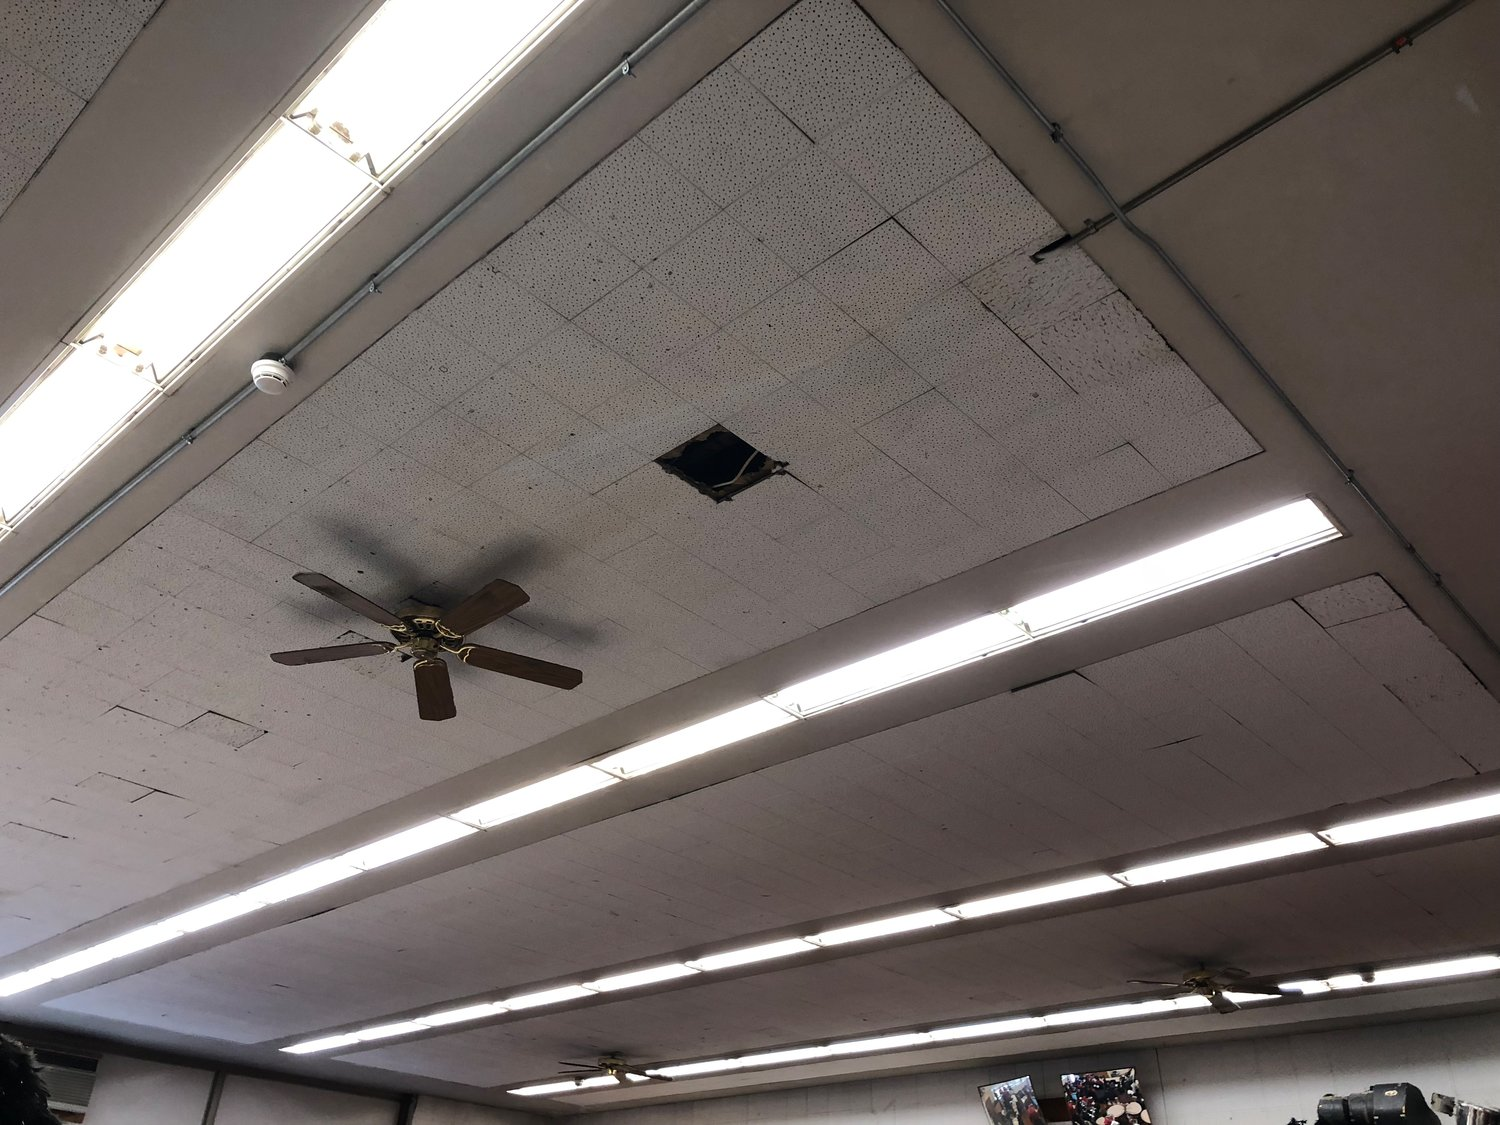 Broken and missing ceiling tiles can be found in all school buildings.